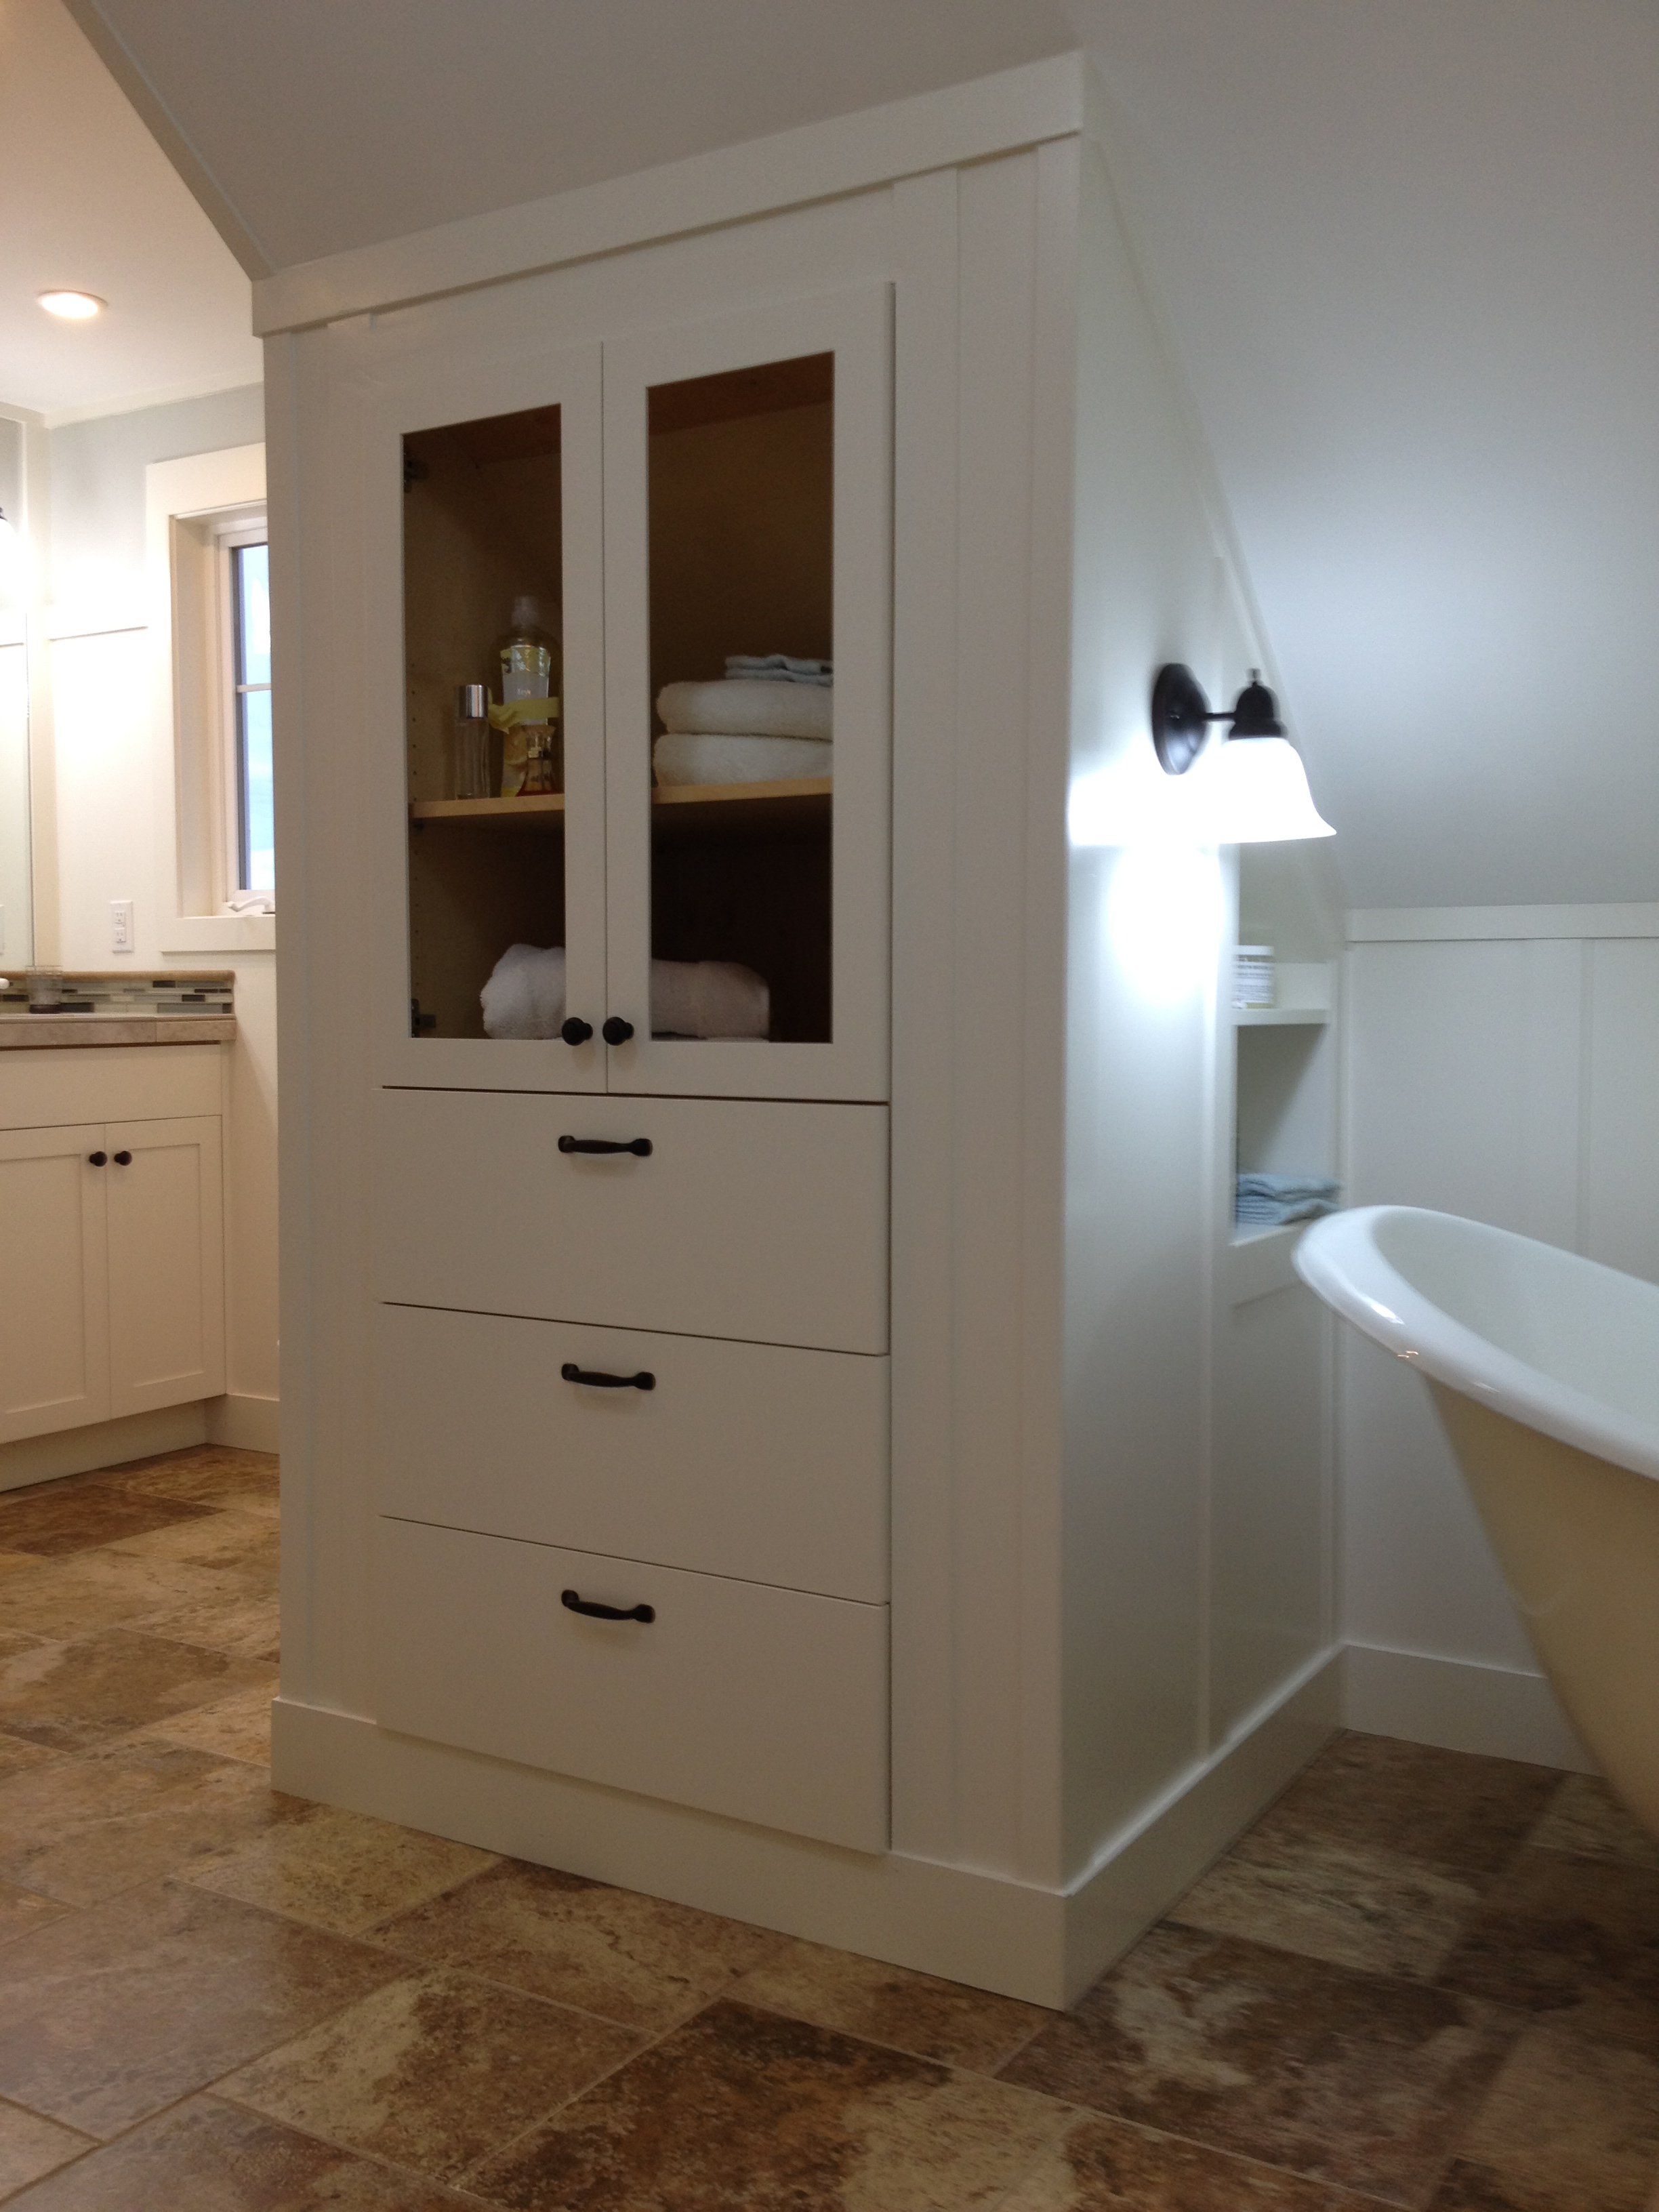 Bathroom built in linen 300x400 kitchen bath laundry for Bath remodel vancouver wa